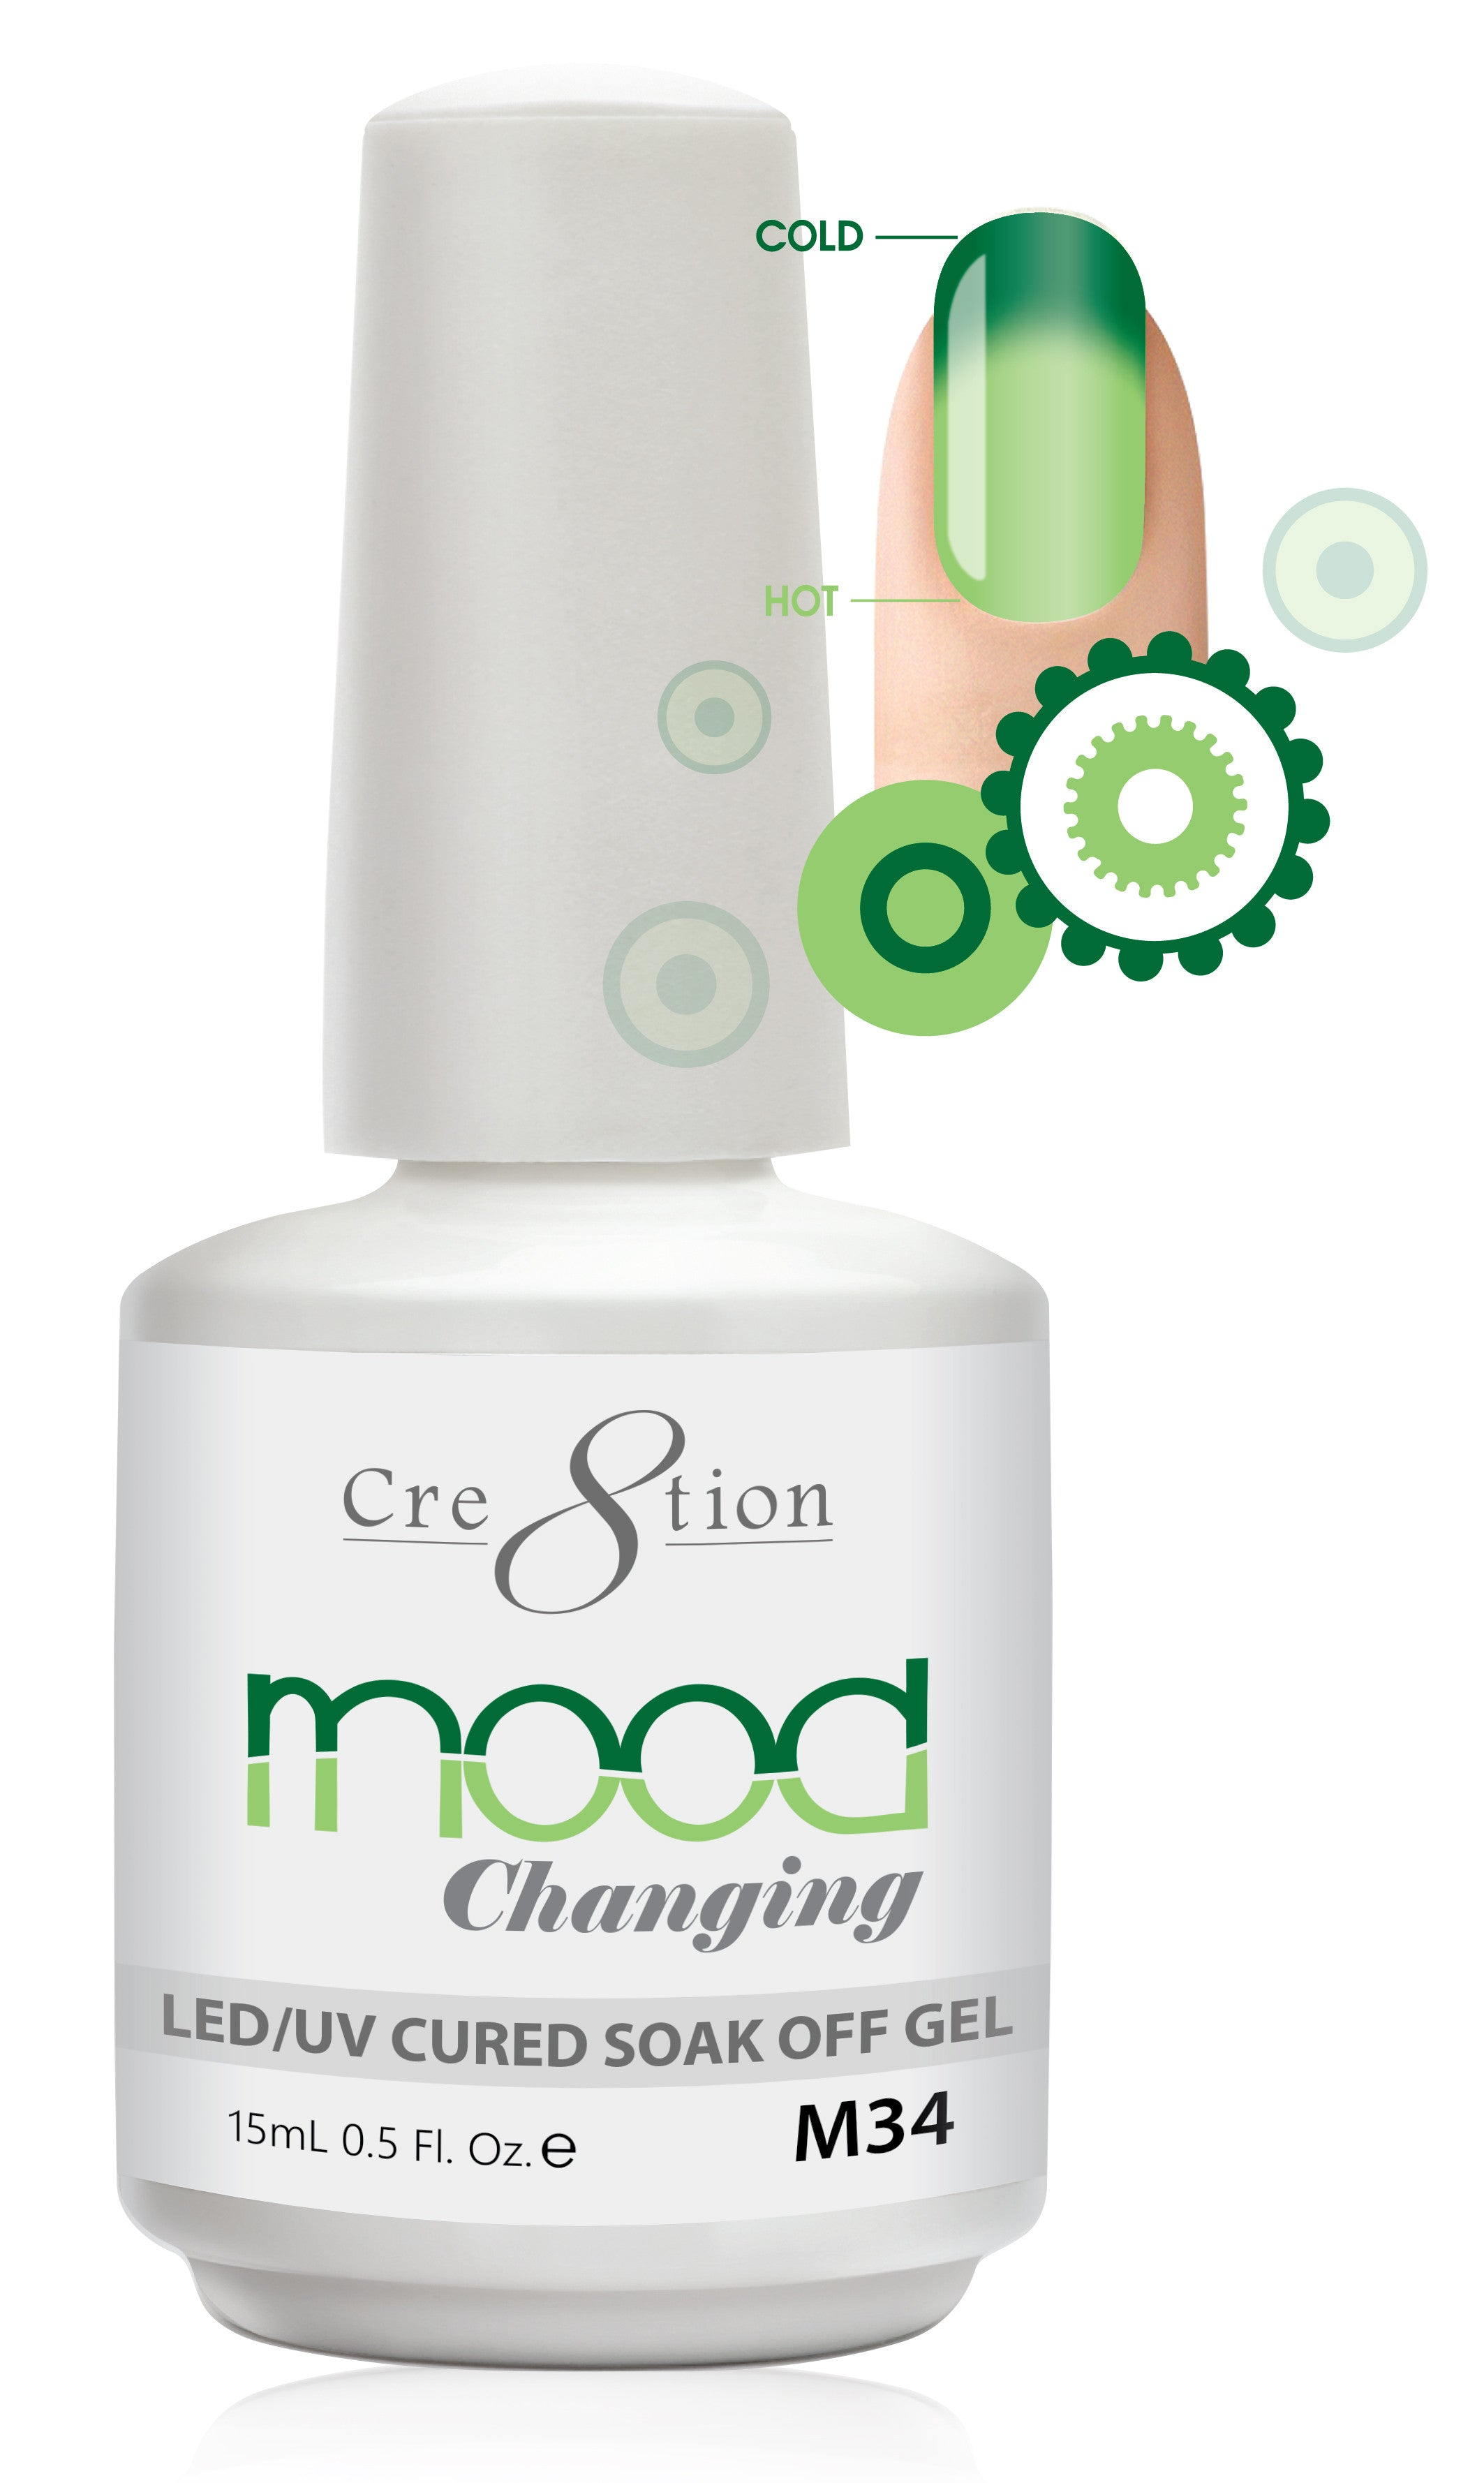 Cre8tion Mood Changing Soak Off Gel M34-Creamy